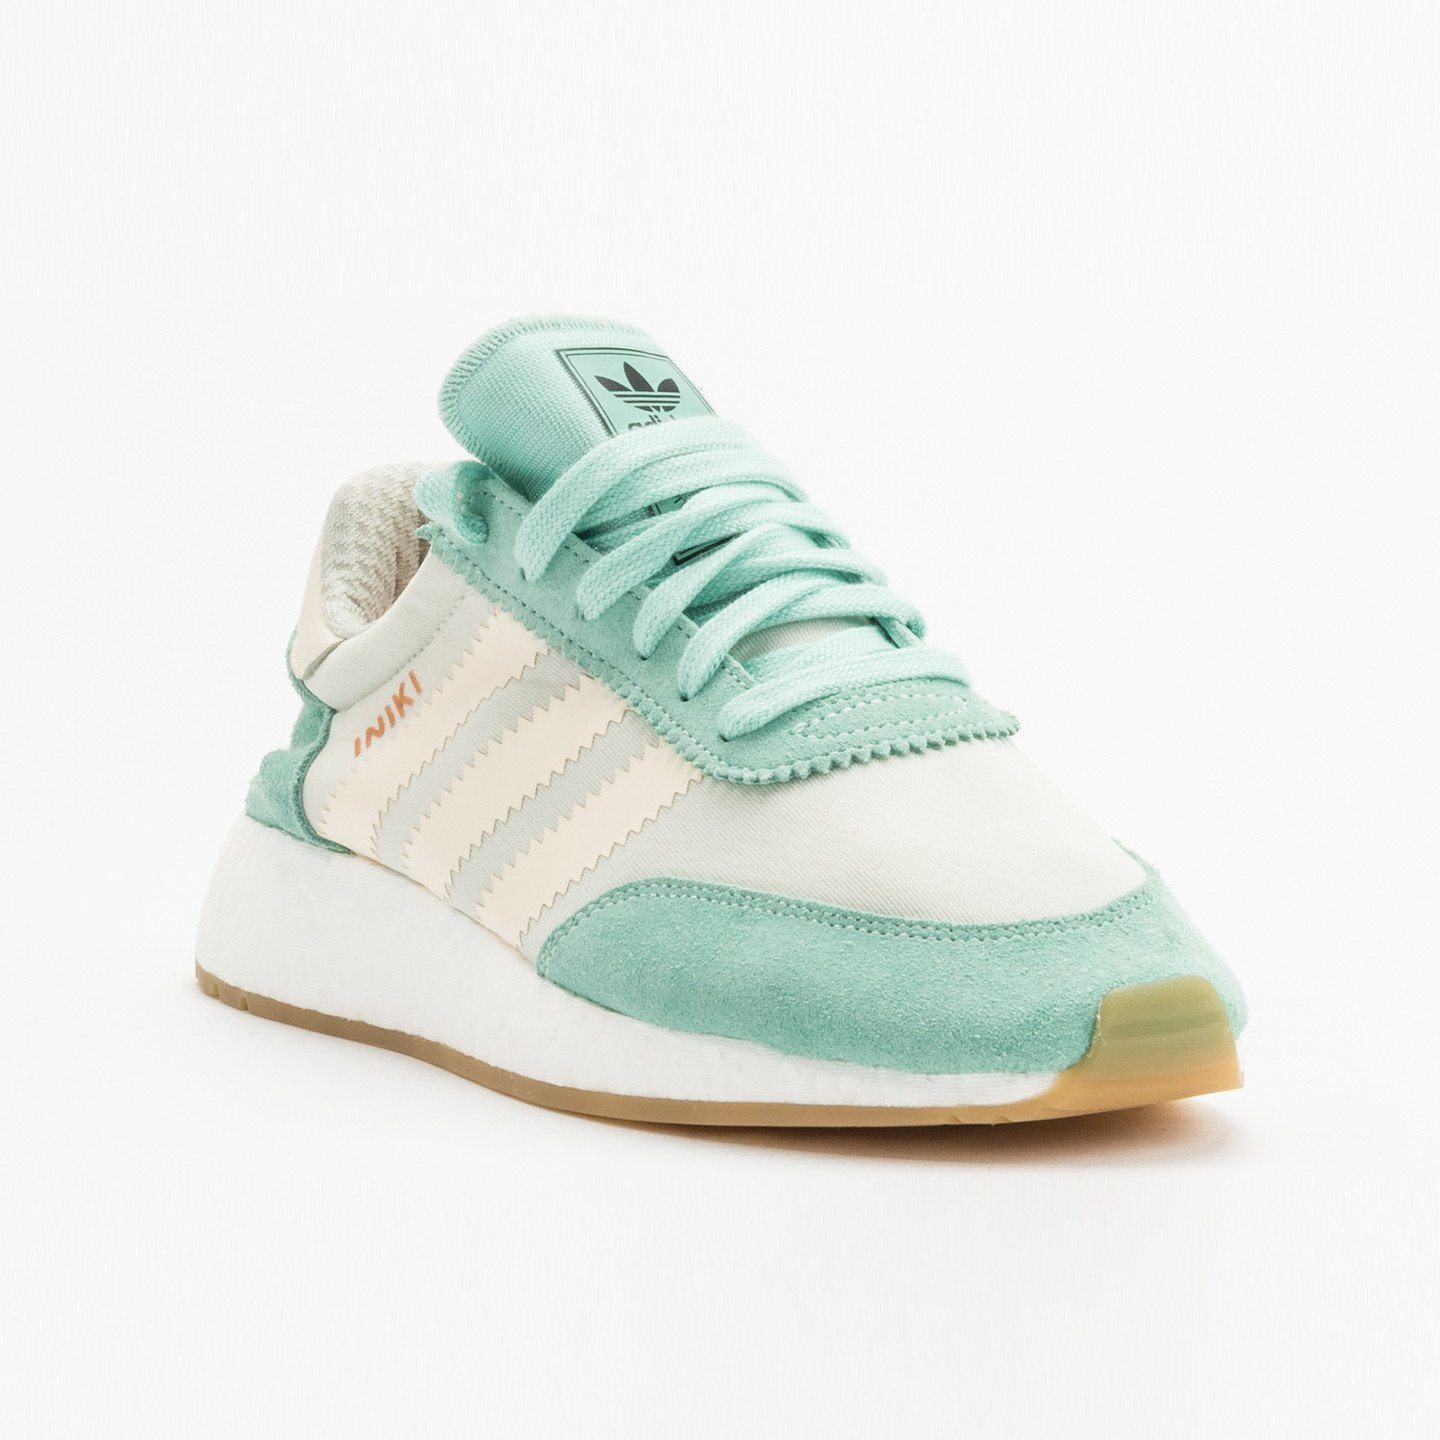 Adidas Iniki Runner W Easy Green / Cream White / Linen Green BA9994-39.33